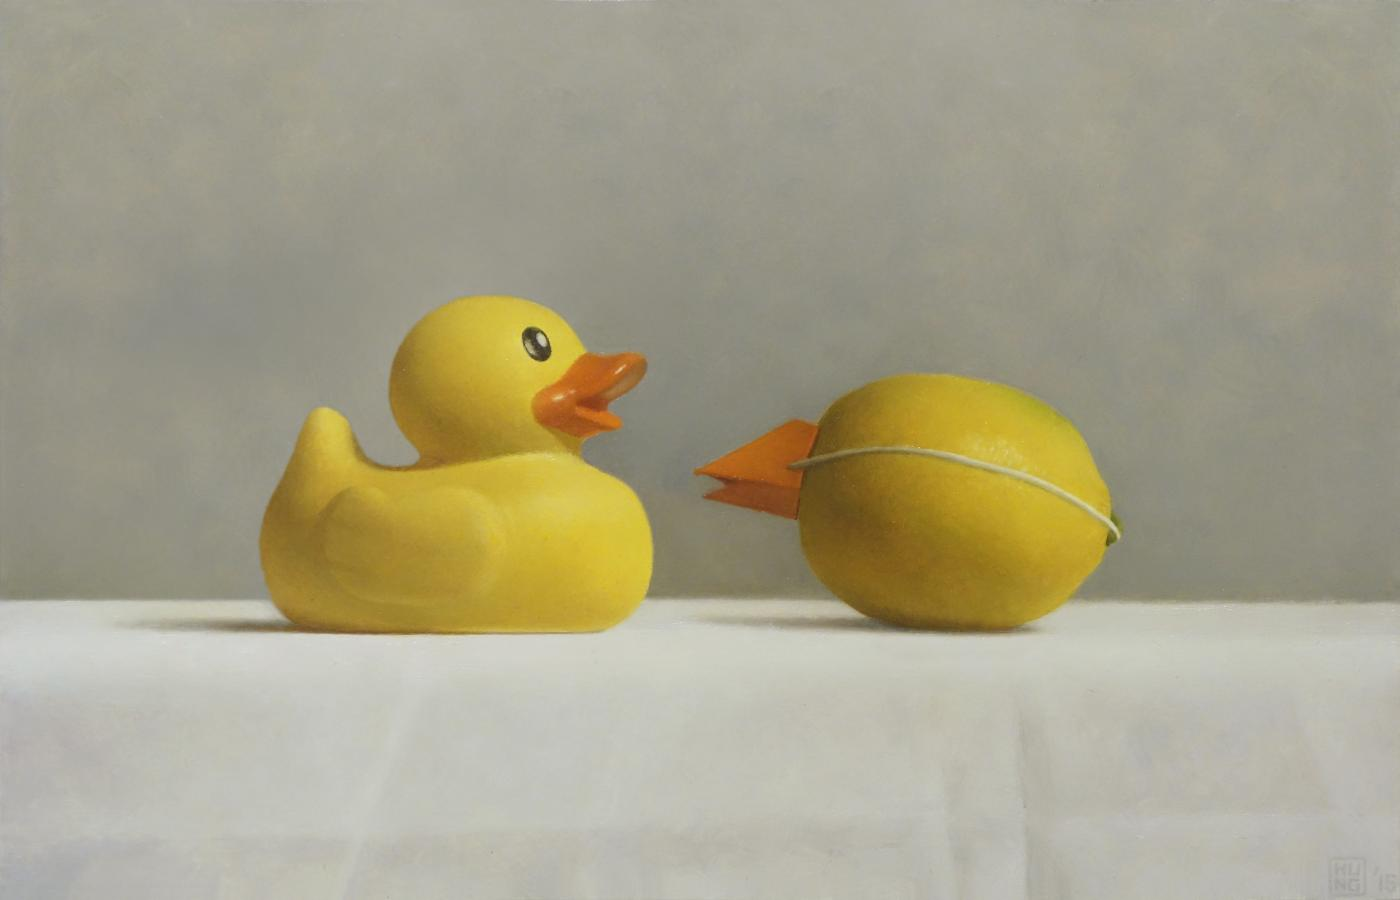 Samuel Hung - Imposters #2 (Rubber Duck & Lemon)